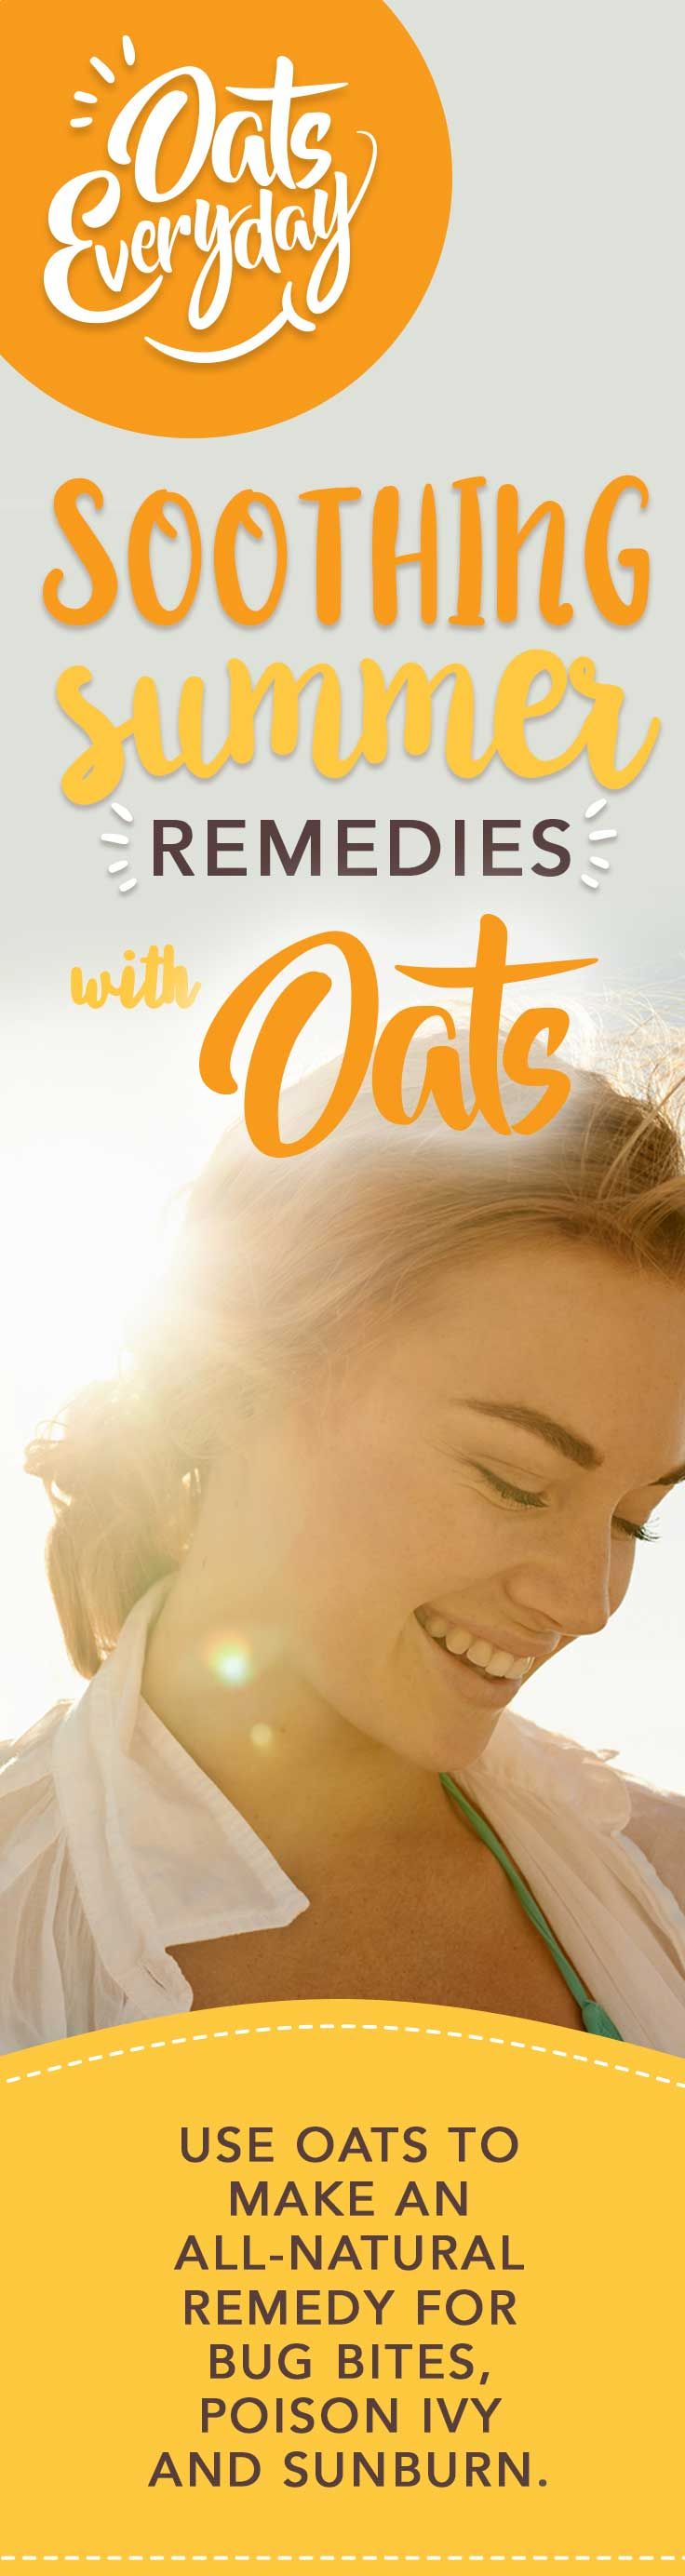 Oats are a natural, hypoallergenic alternative to commercial skin-care products and are full of B-vitamins which can help moisturize and repair dry and blistered skin.